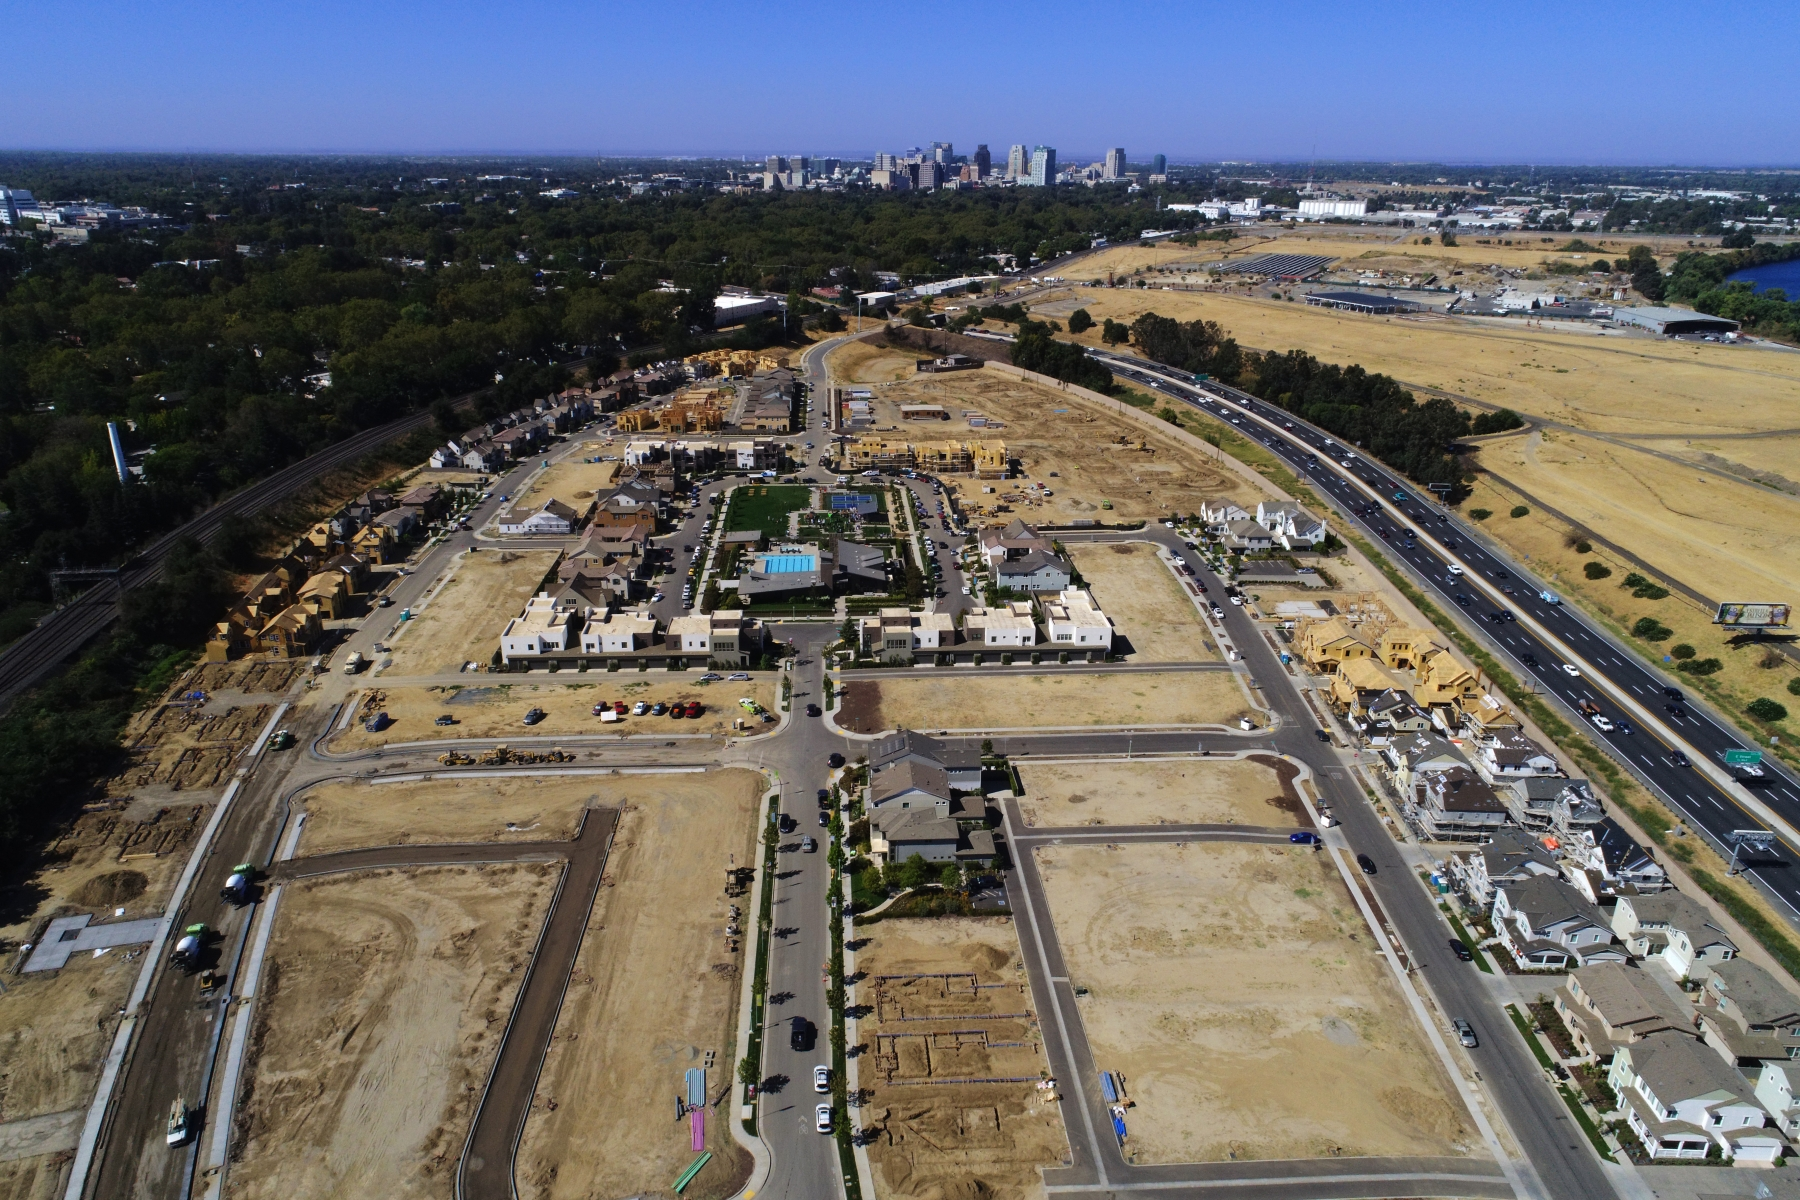 aerial view of development site with lots at various stages of construction and tall buildings in the distance